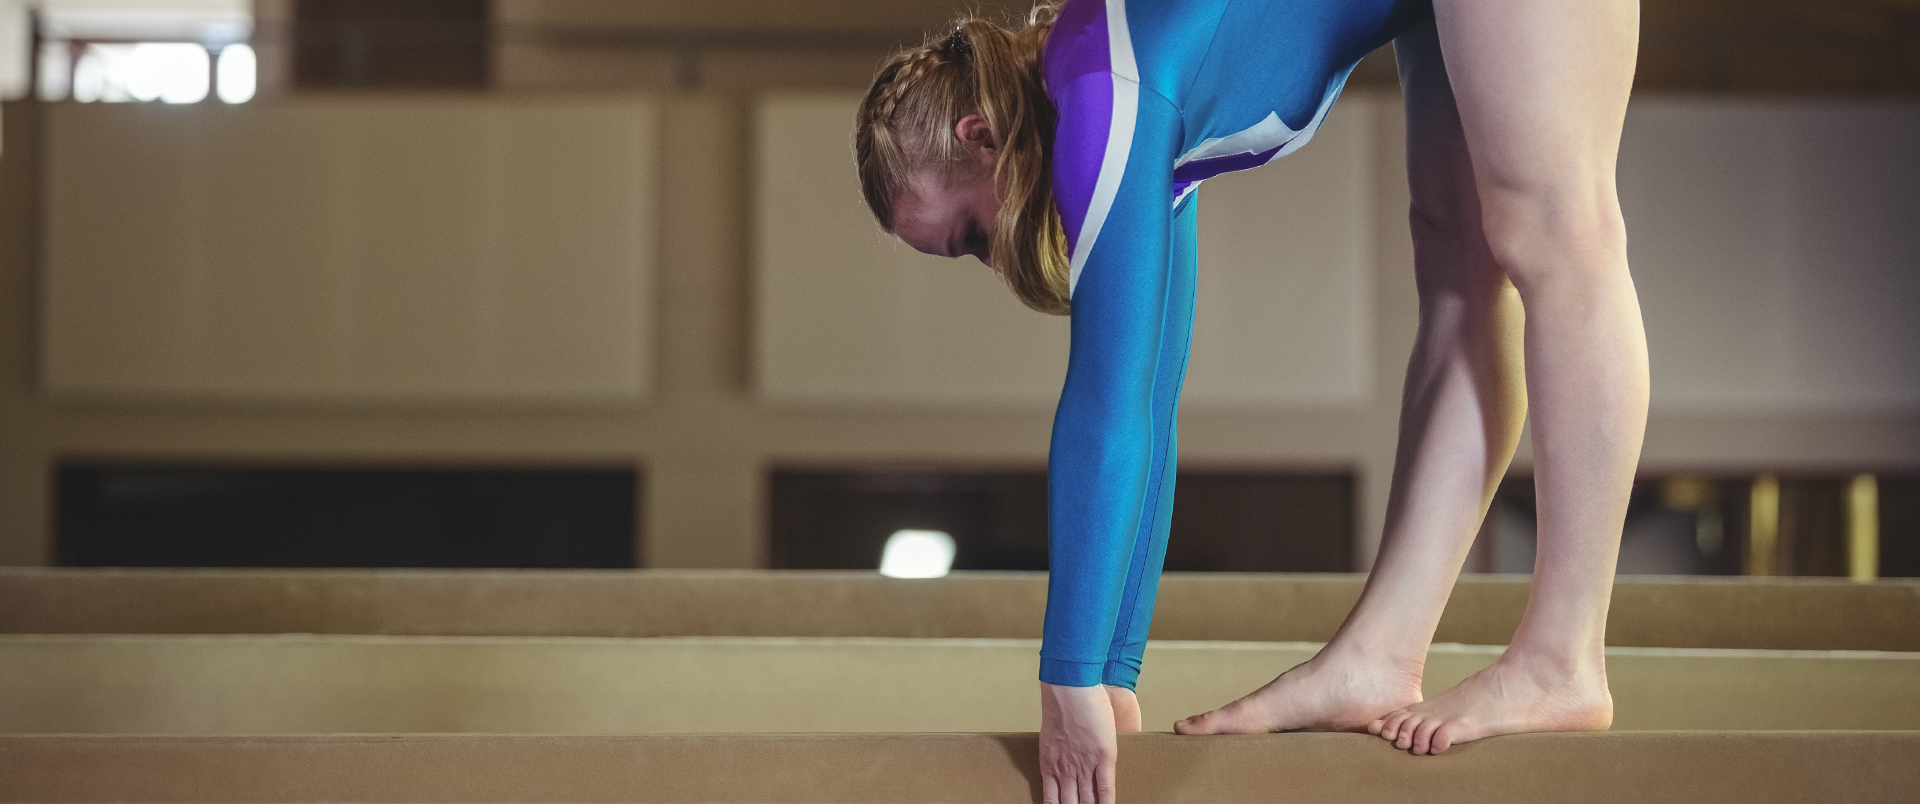 Gymnastics Training Benefits | Athletica Gymnastics